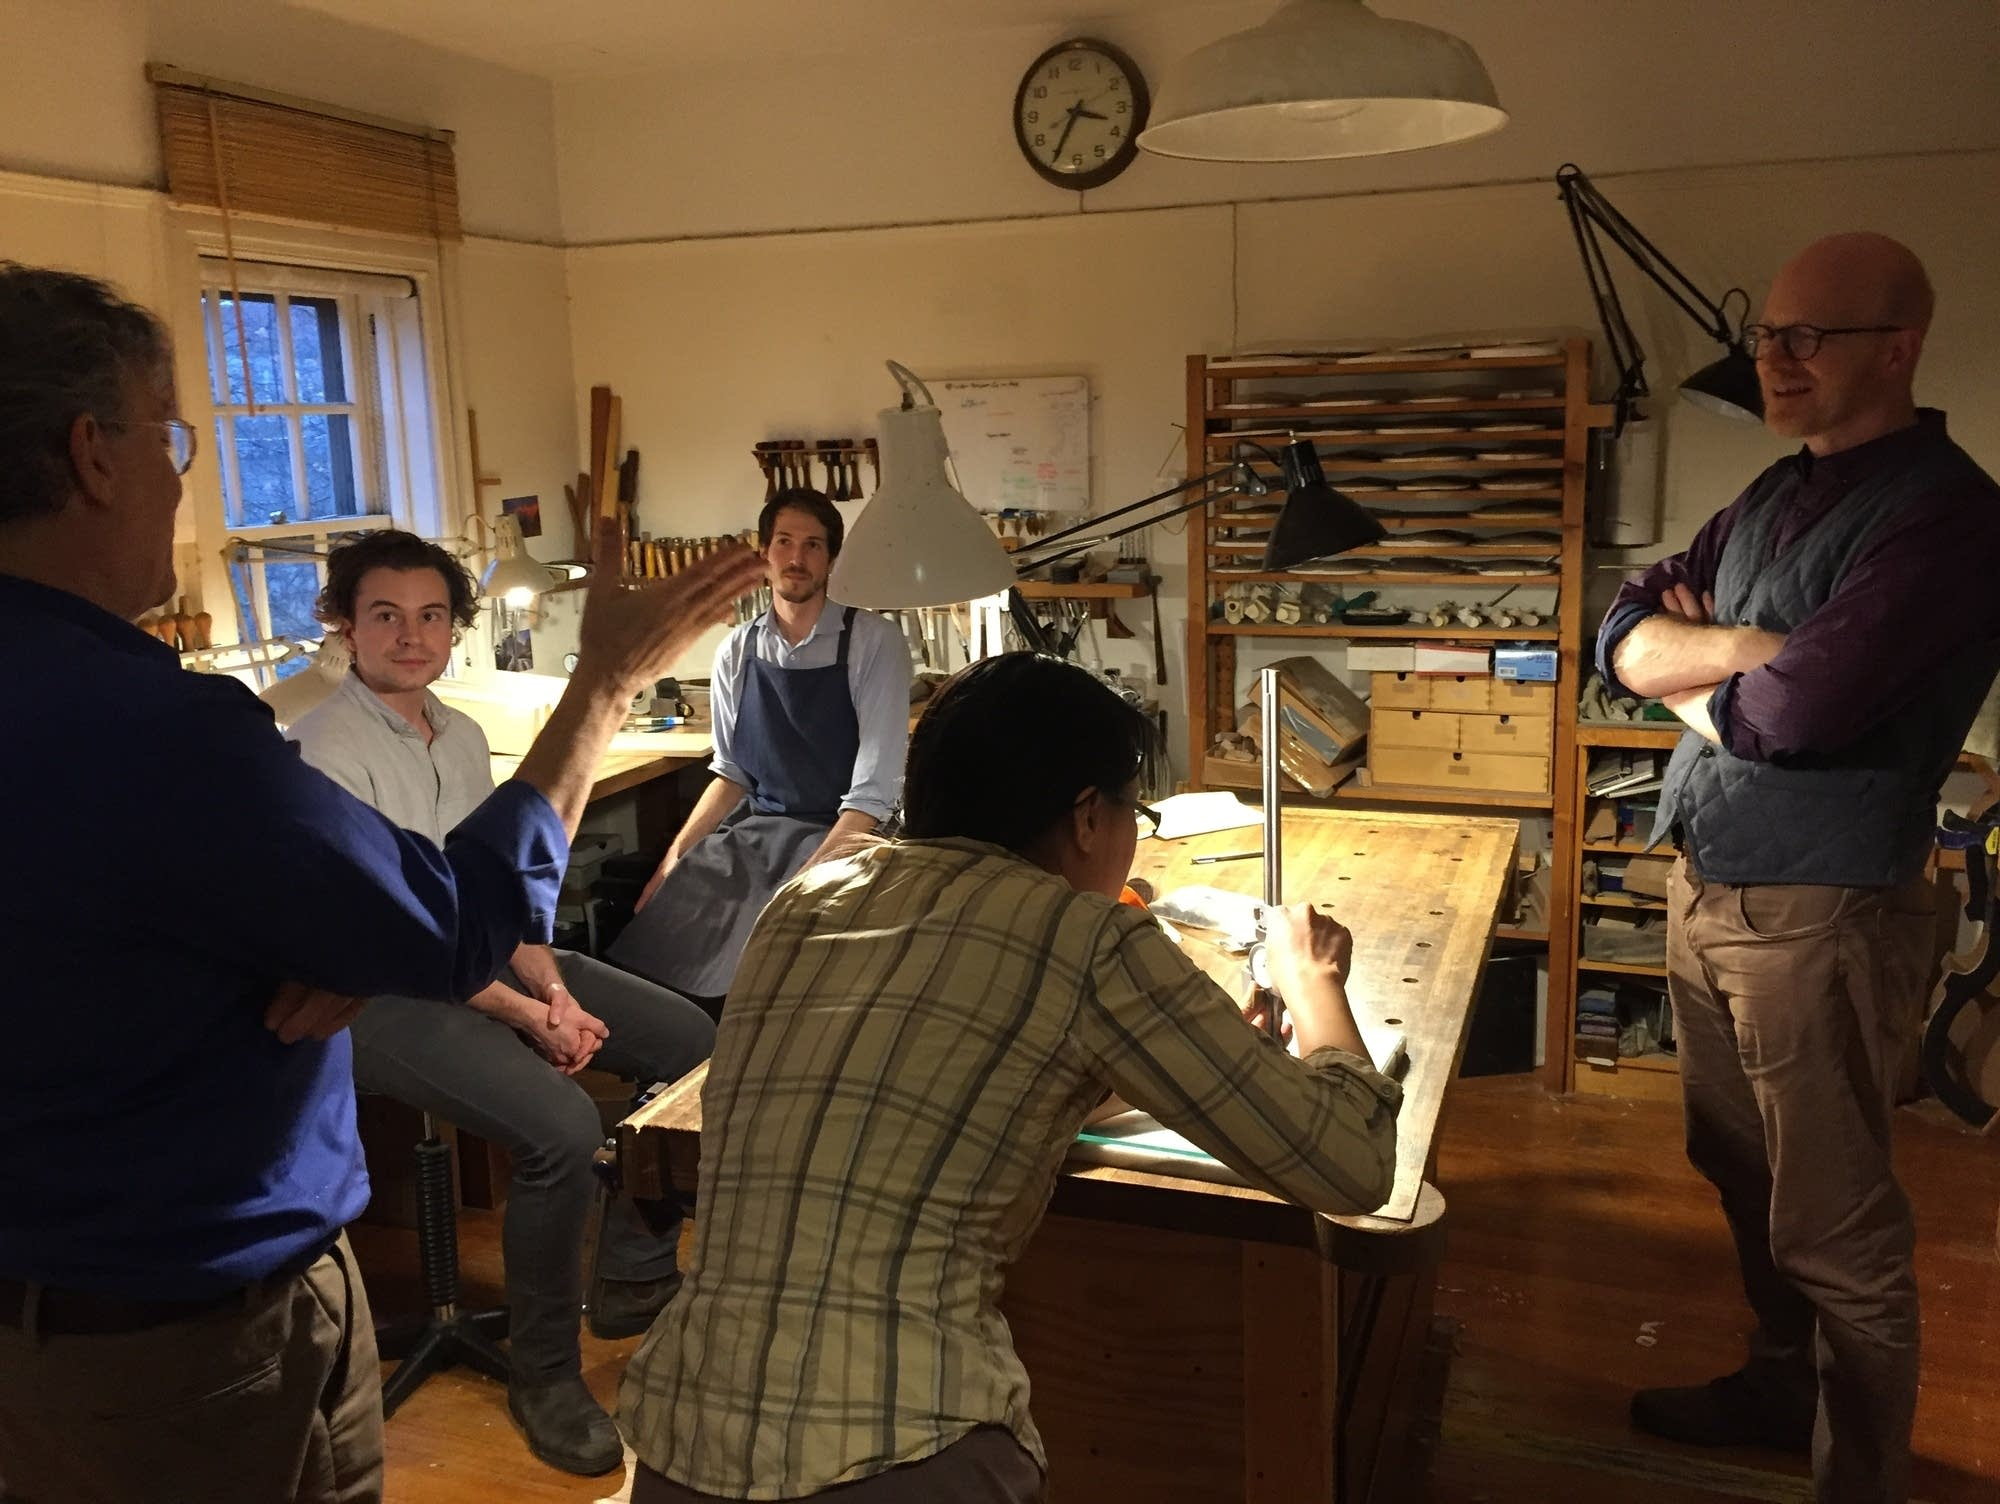 The workshop of Brooklyn violin-maker Sam Zygmuntowicz